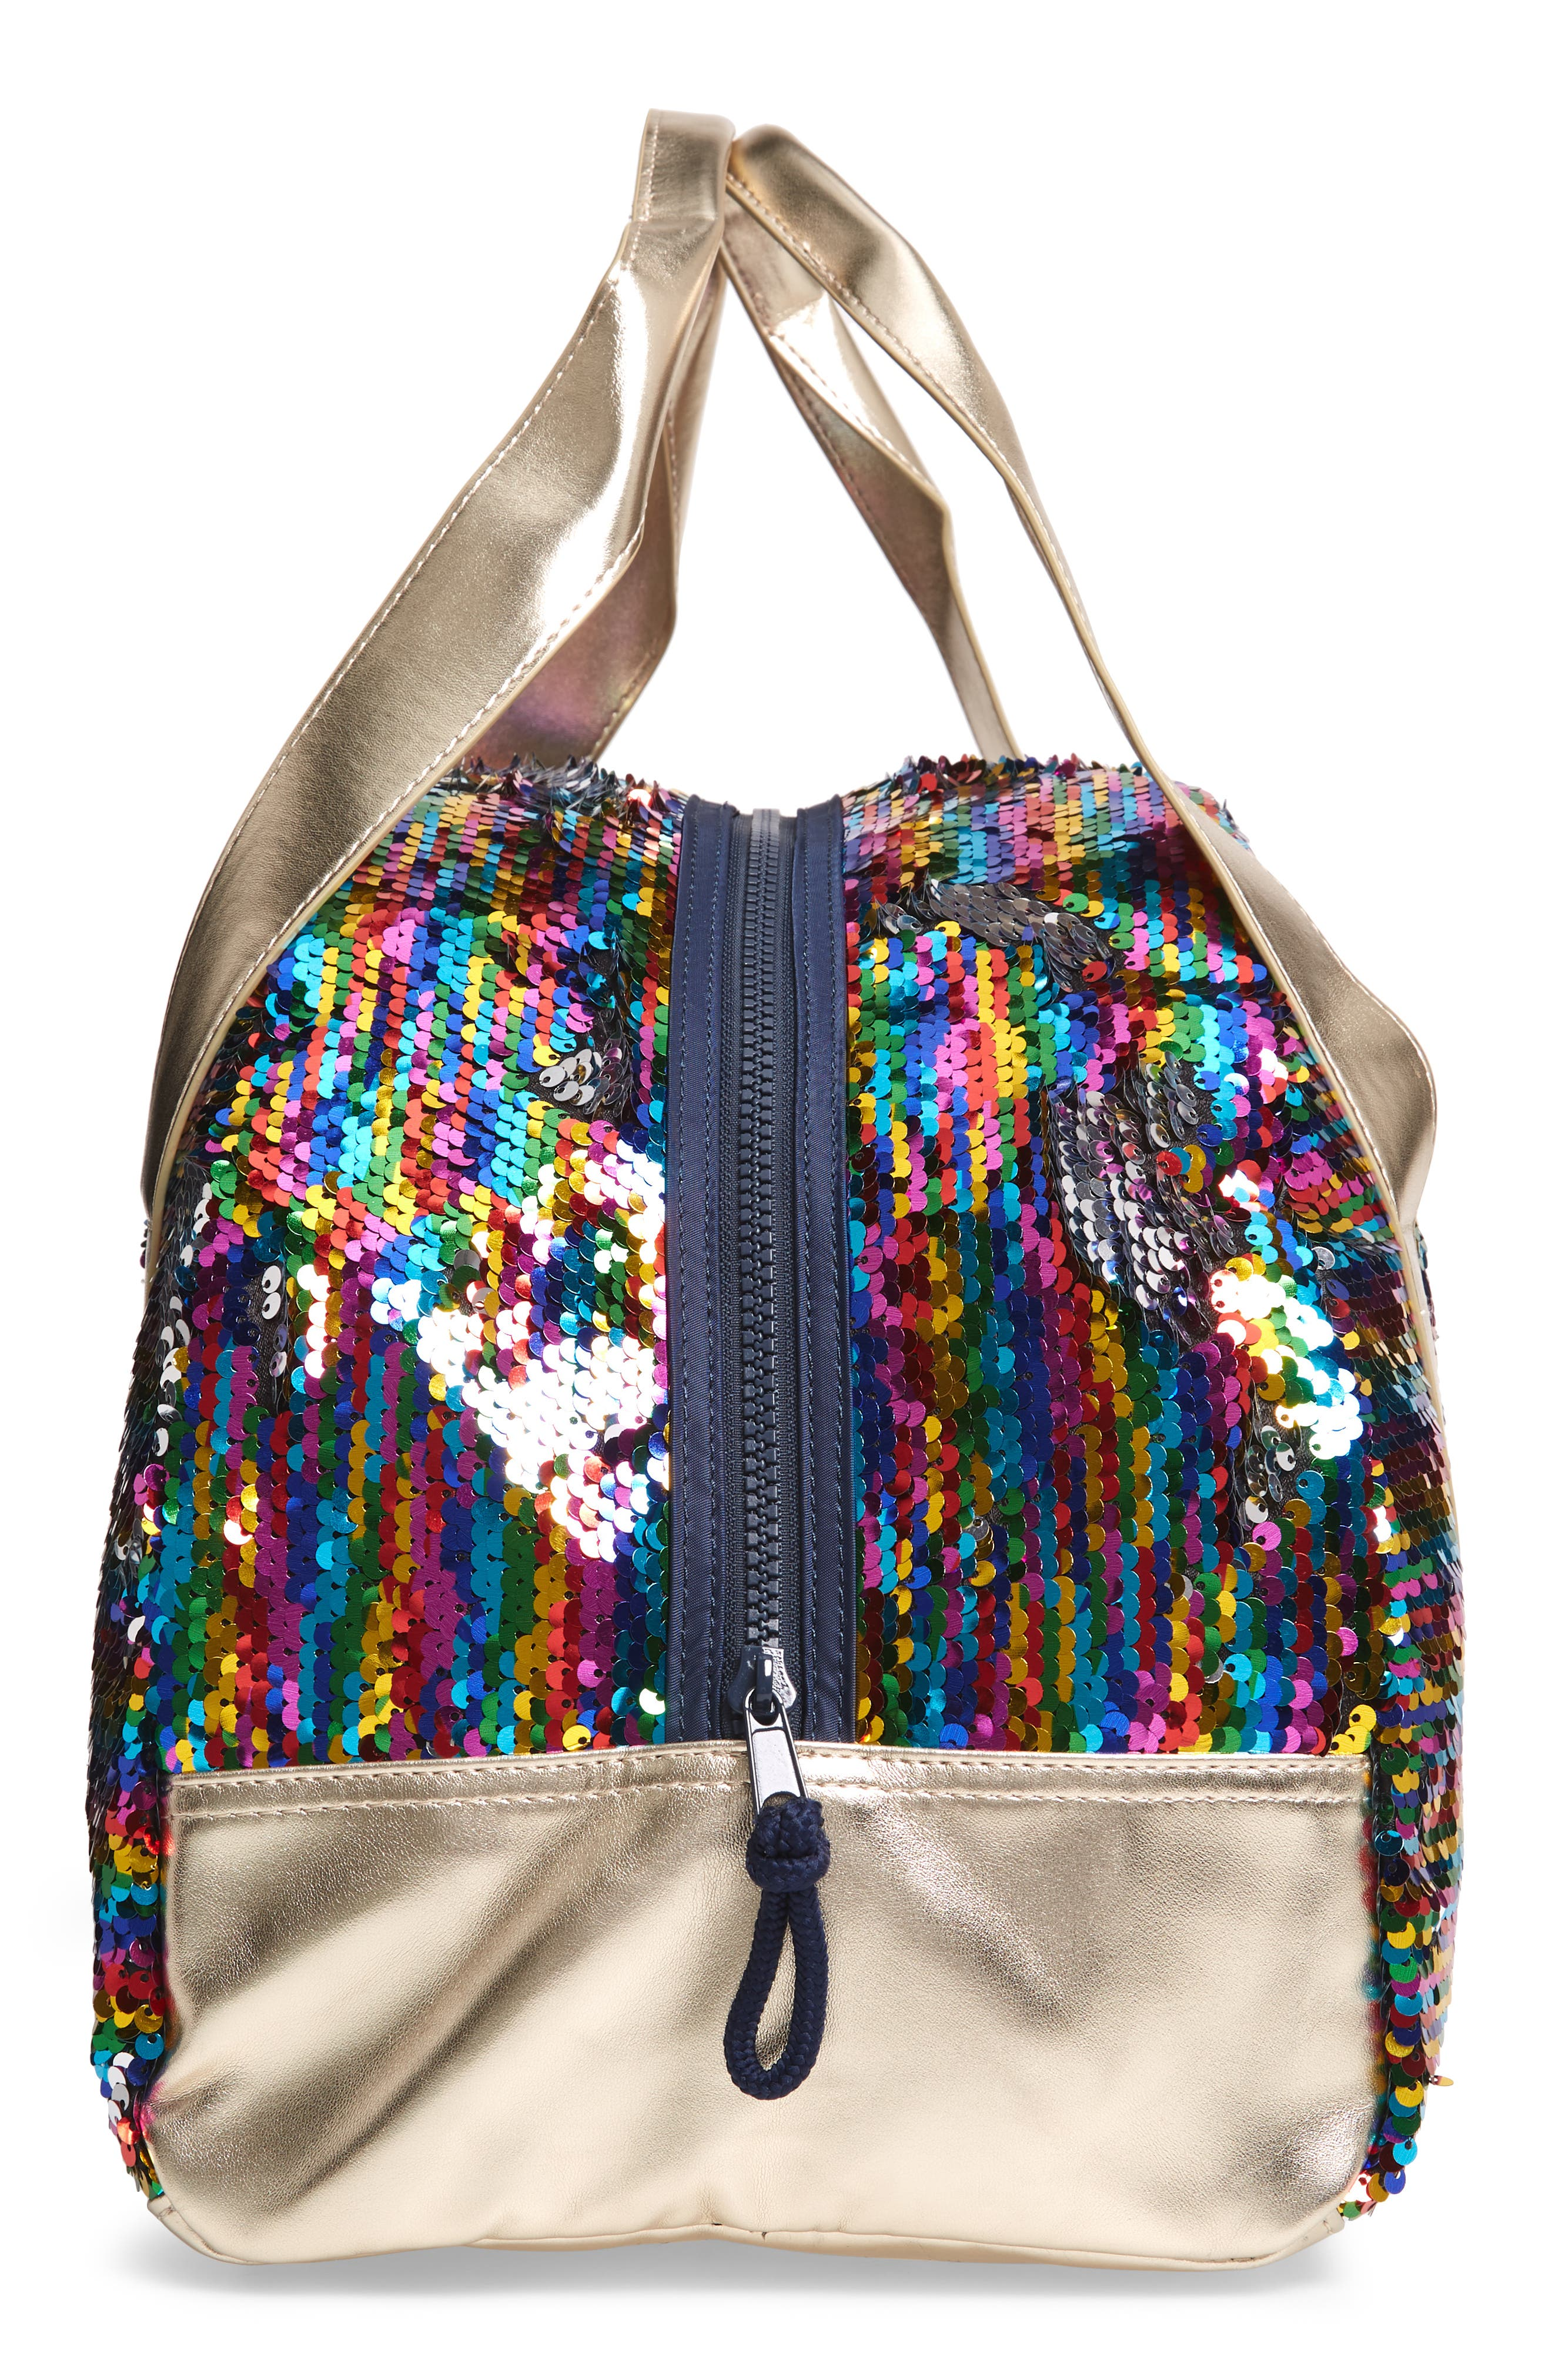 Overnight Bag with Reversible Sequins,                             Alternate thumbnail 4, color,                             964